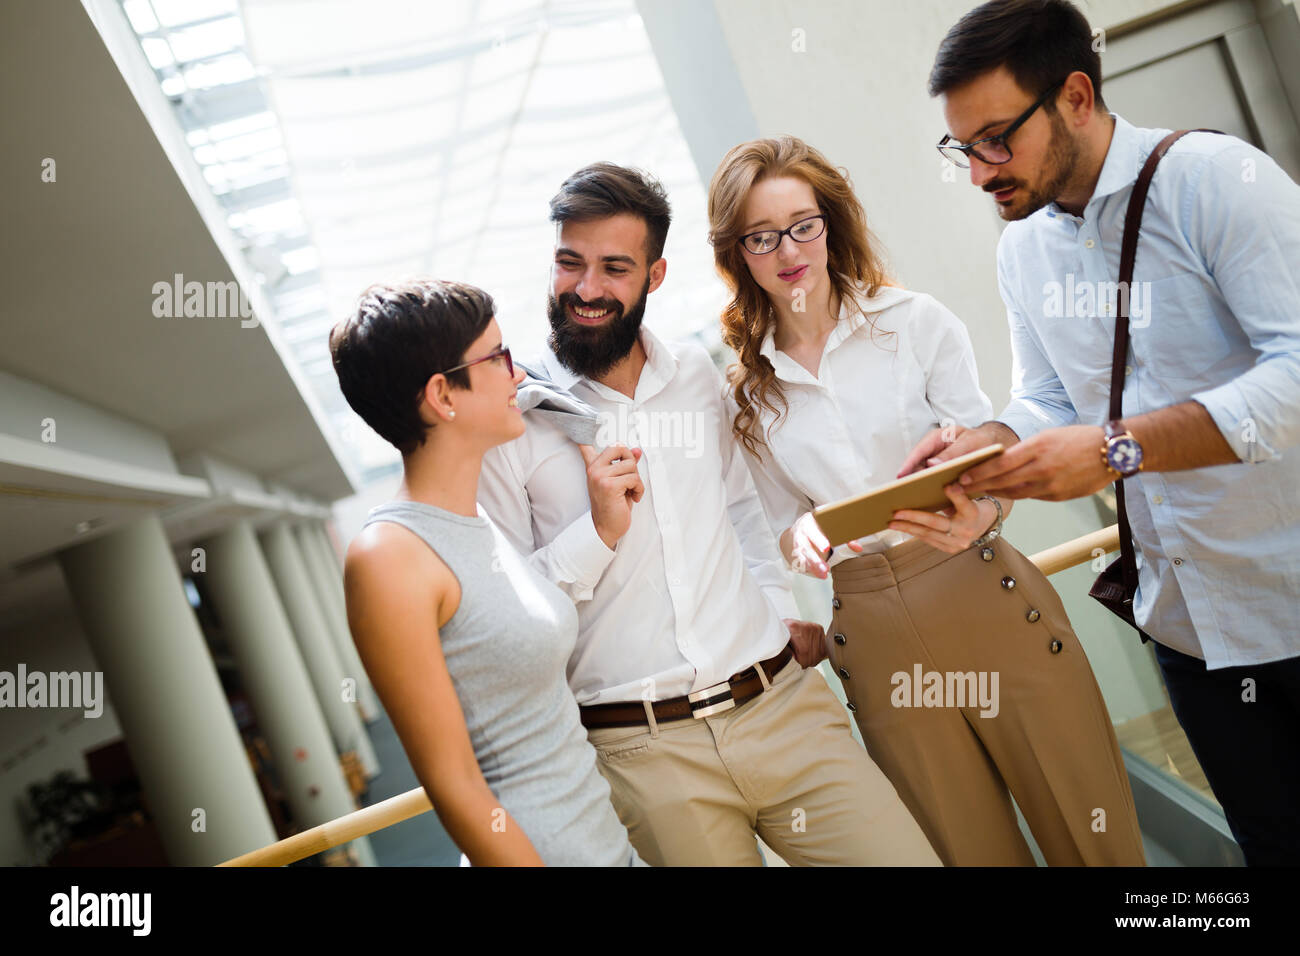 Portrait of businesspeople avoir du temps libre du travail Photo Stock